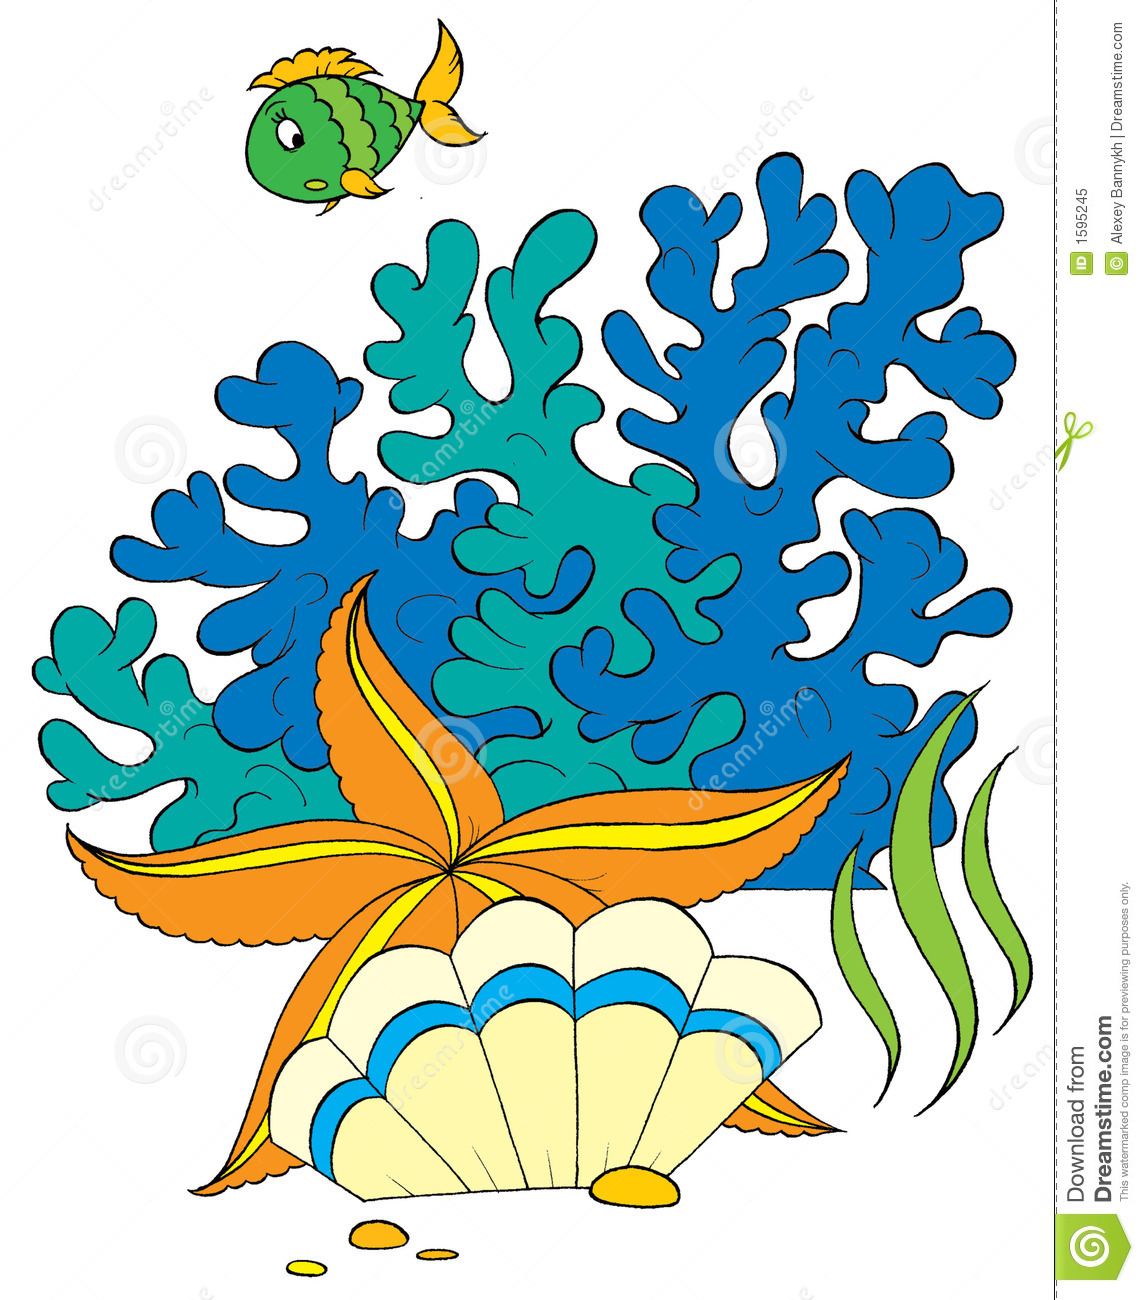 coral reef fish clipart clipart panda free clipart images rh clipartpanda com coral reef clipart illustrator coral reef clipart